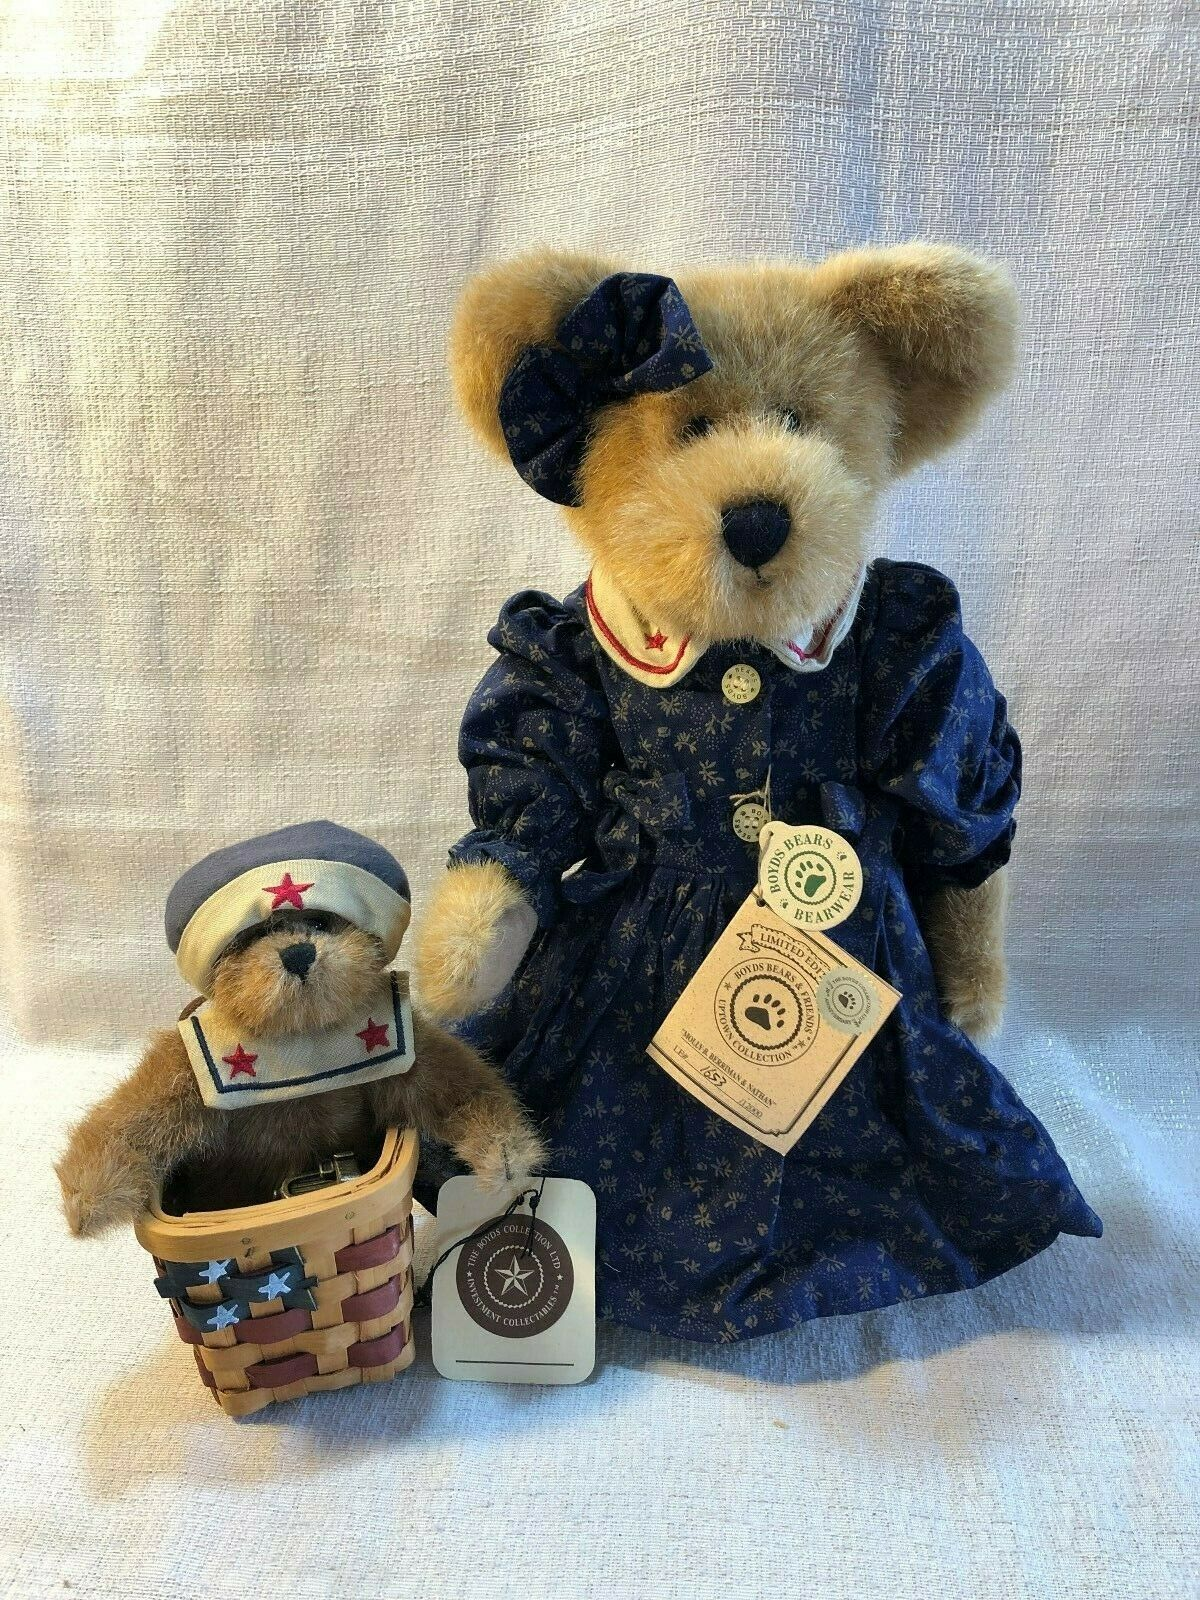 Boyds Bear The Uptown Collection Mohair Bear Molly B. Berriman Nathan 900253